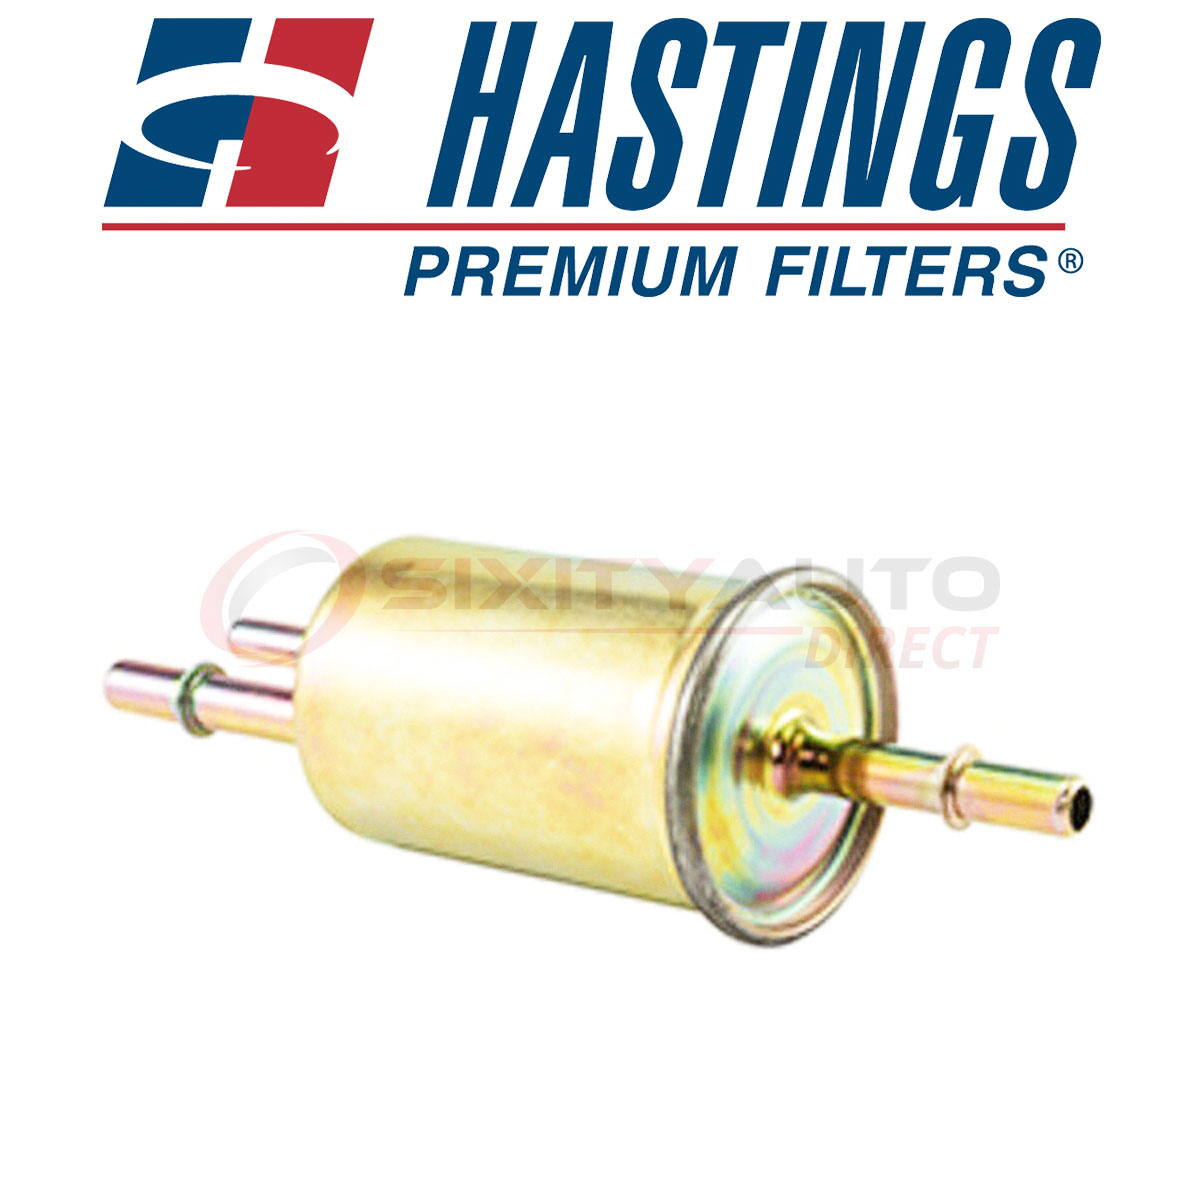 Hastings Fuel Filter for 2004 Mercury Mountaineer 4.0L V6 - Gas Filtration  xq | eBayeBay